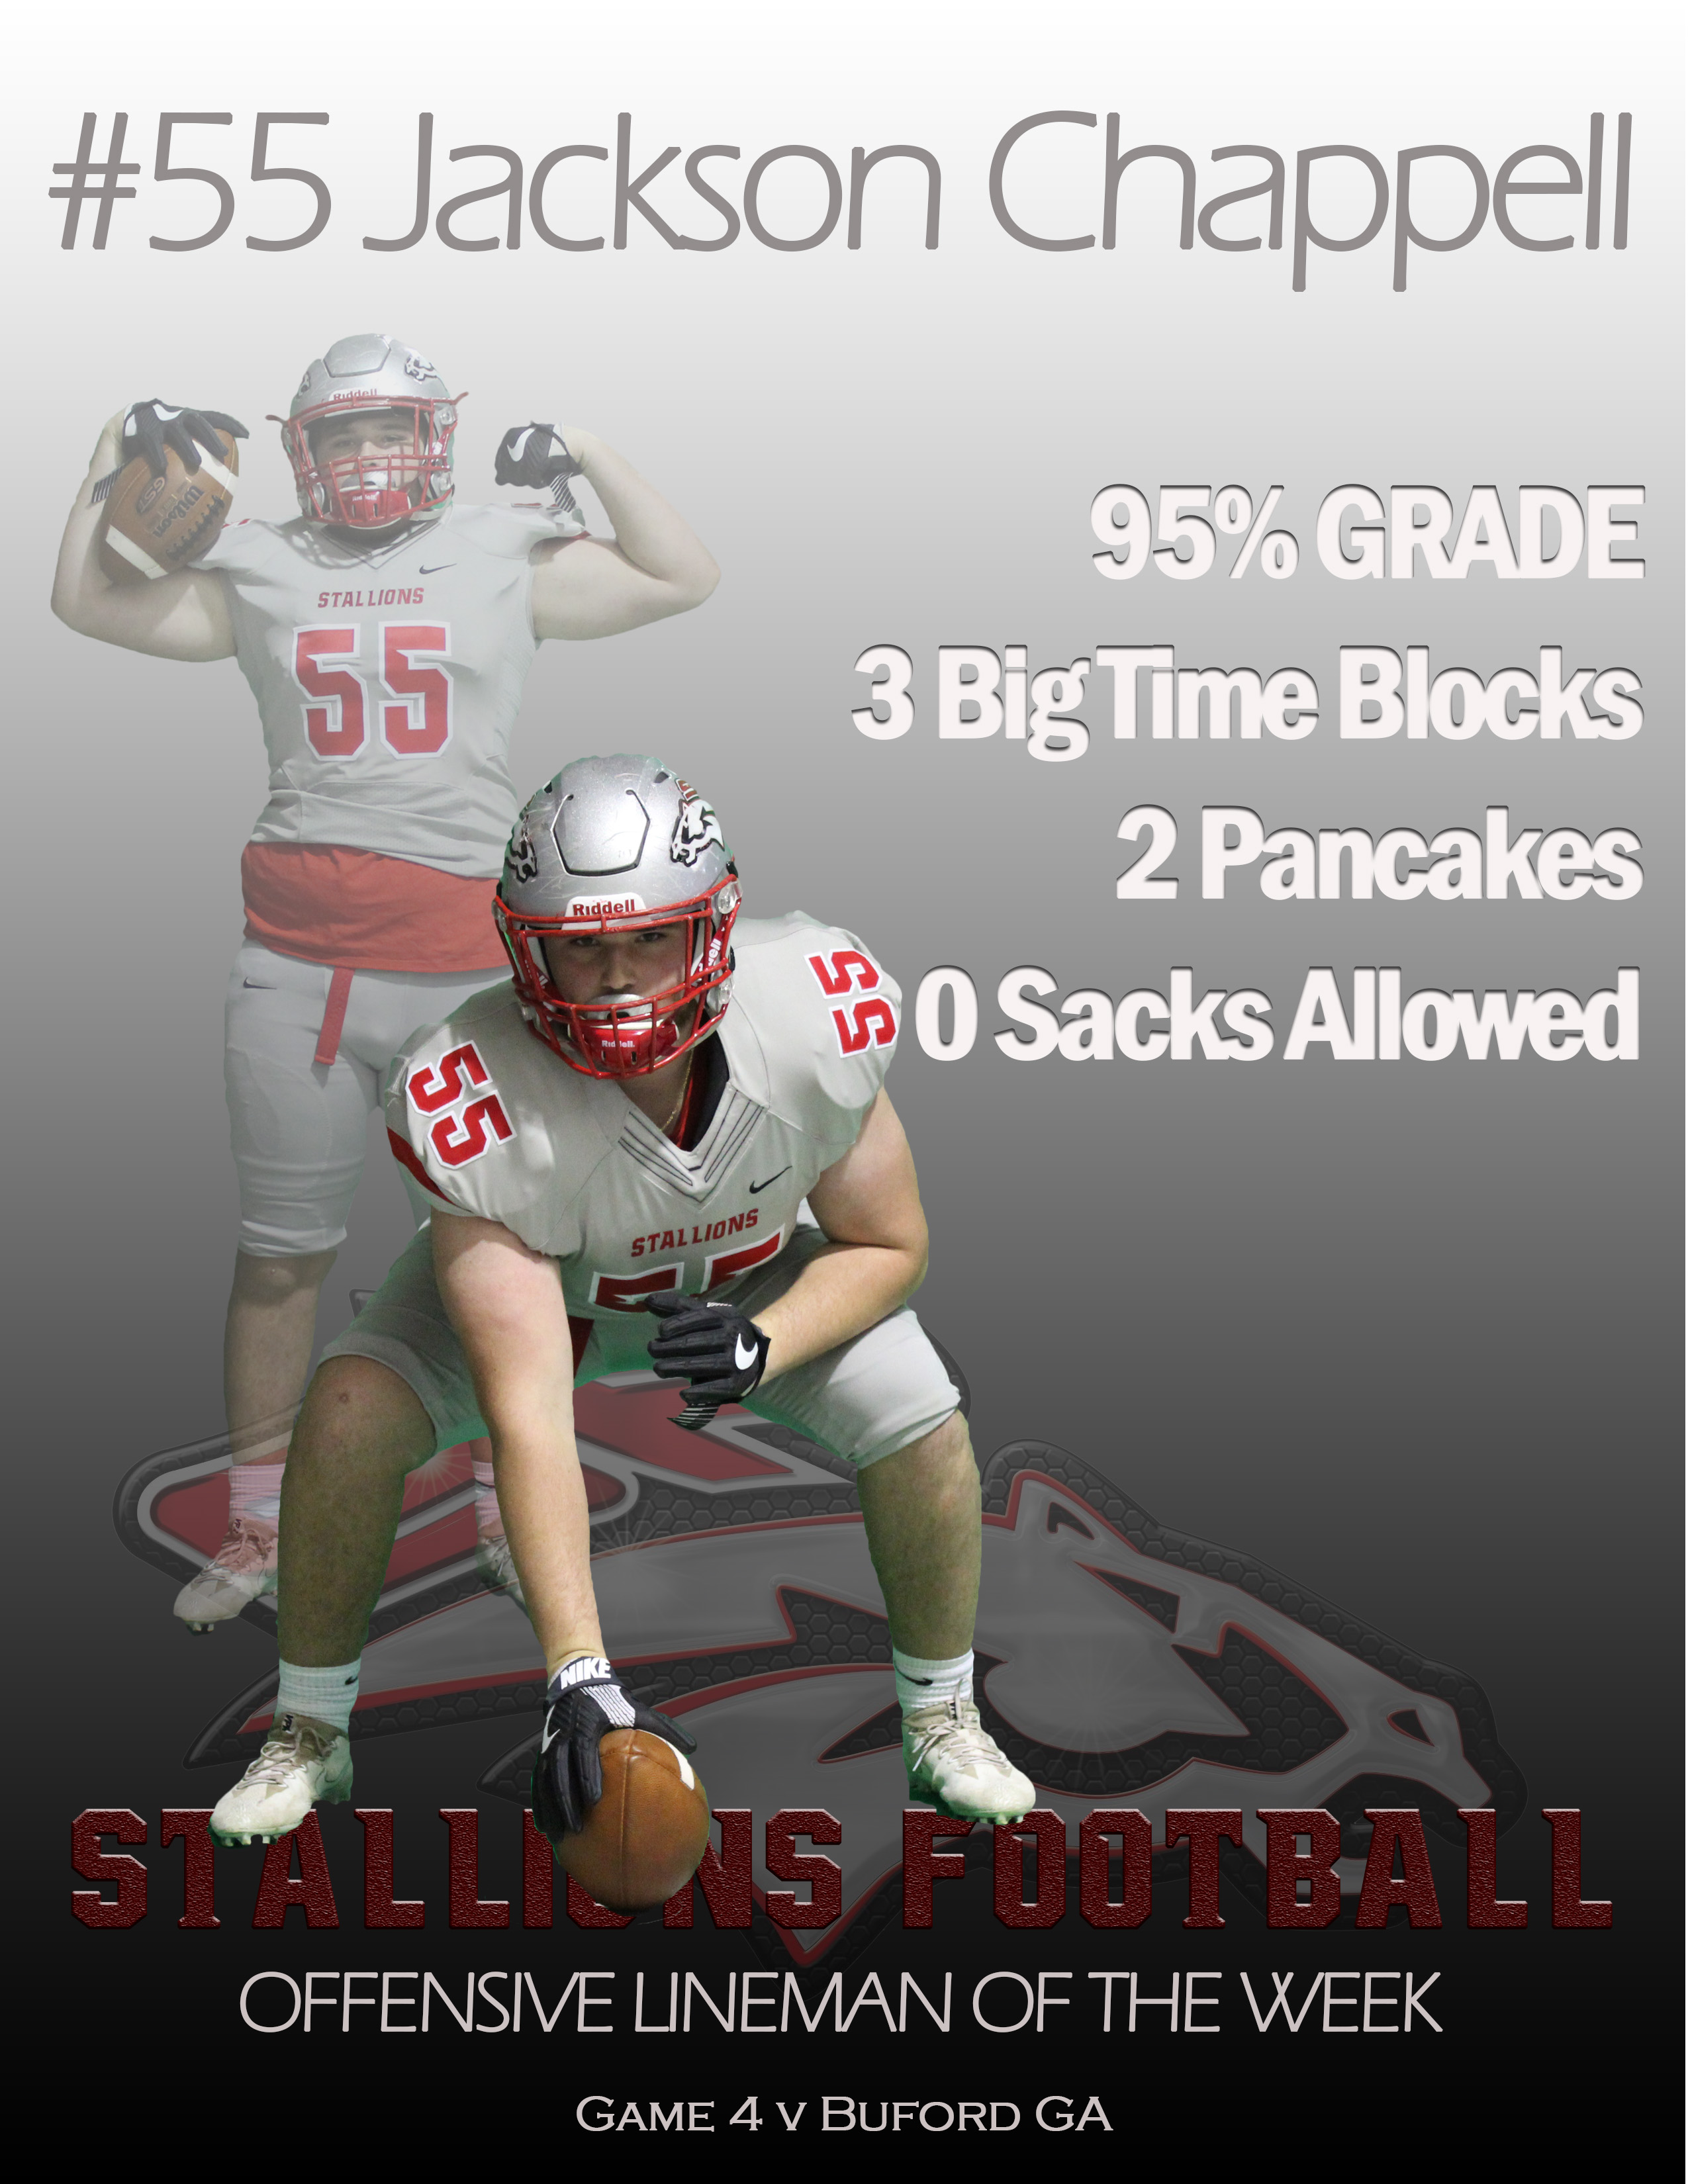 #55 Jackson Chappell Offensive Lineman of the Week